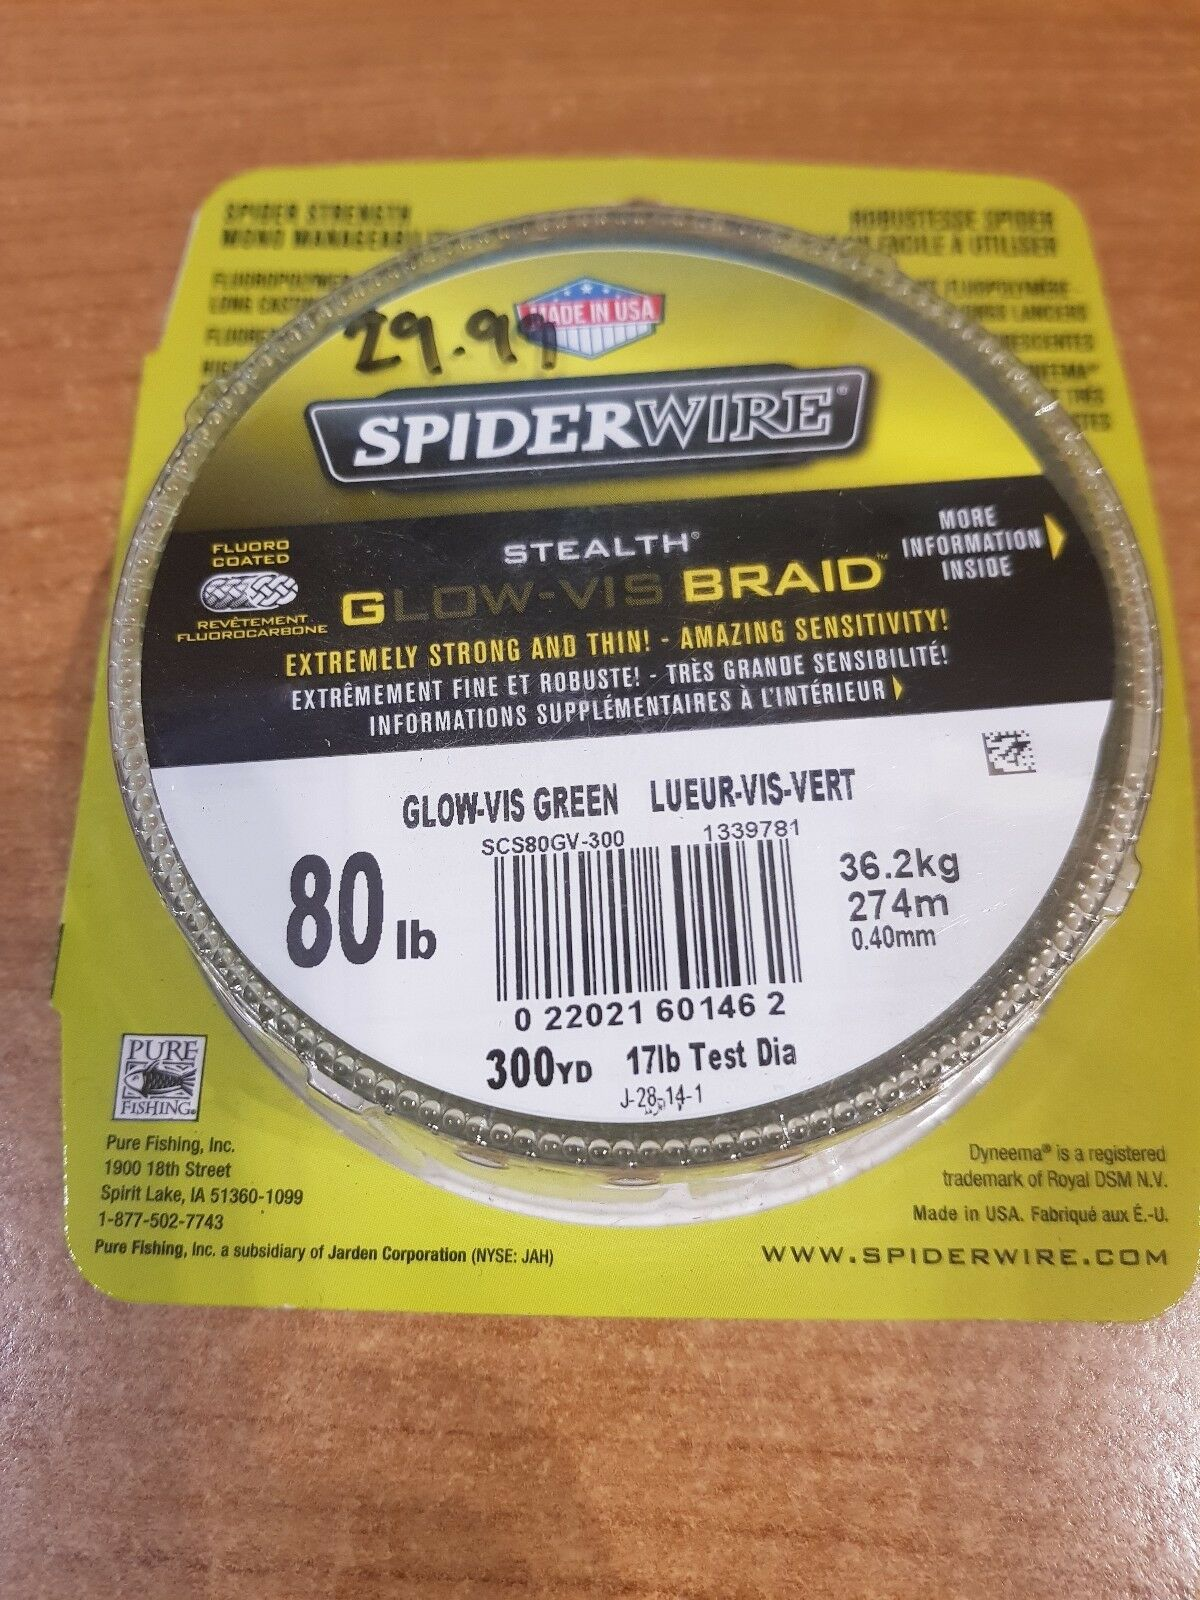 Spiderwire Stealth Glow-Vis Braid  80lb 274m 0.40mm  select from the newest brands like